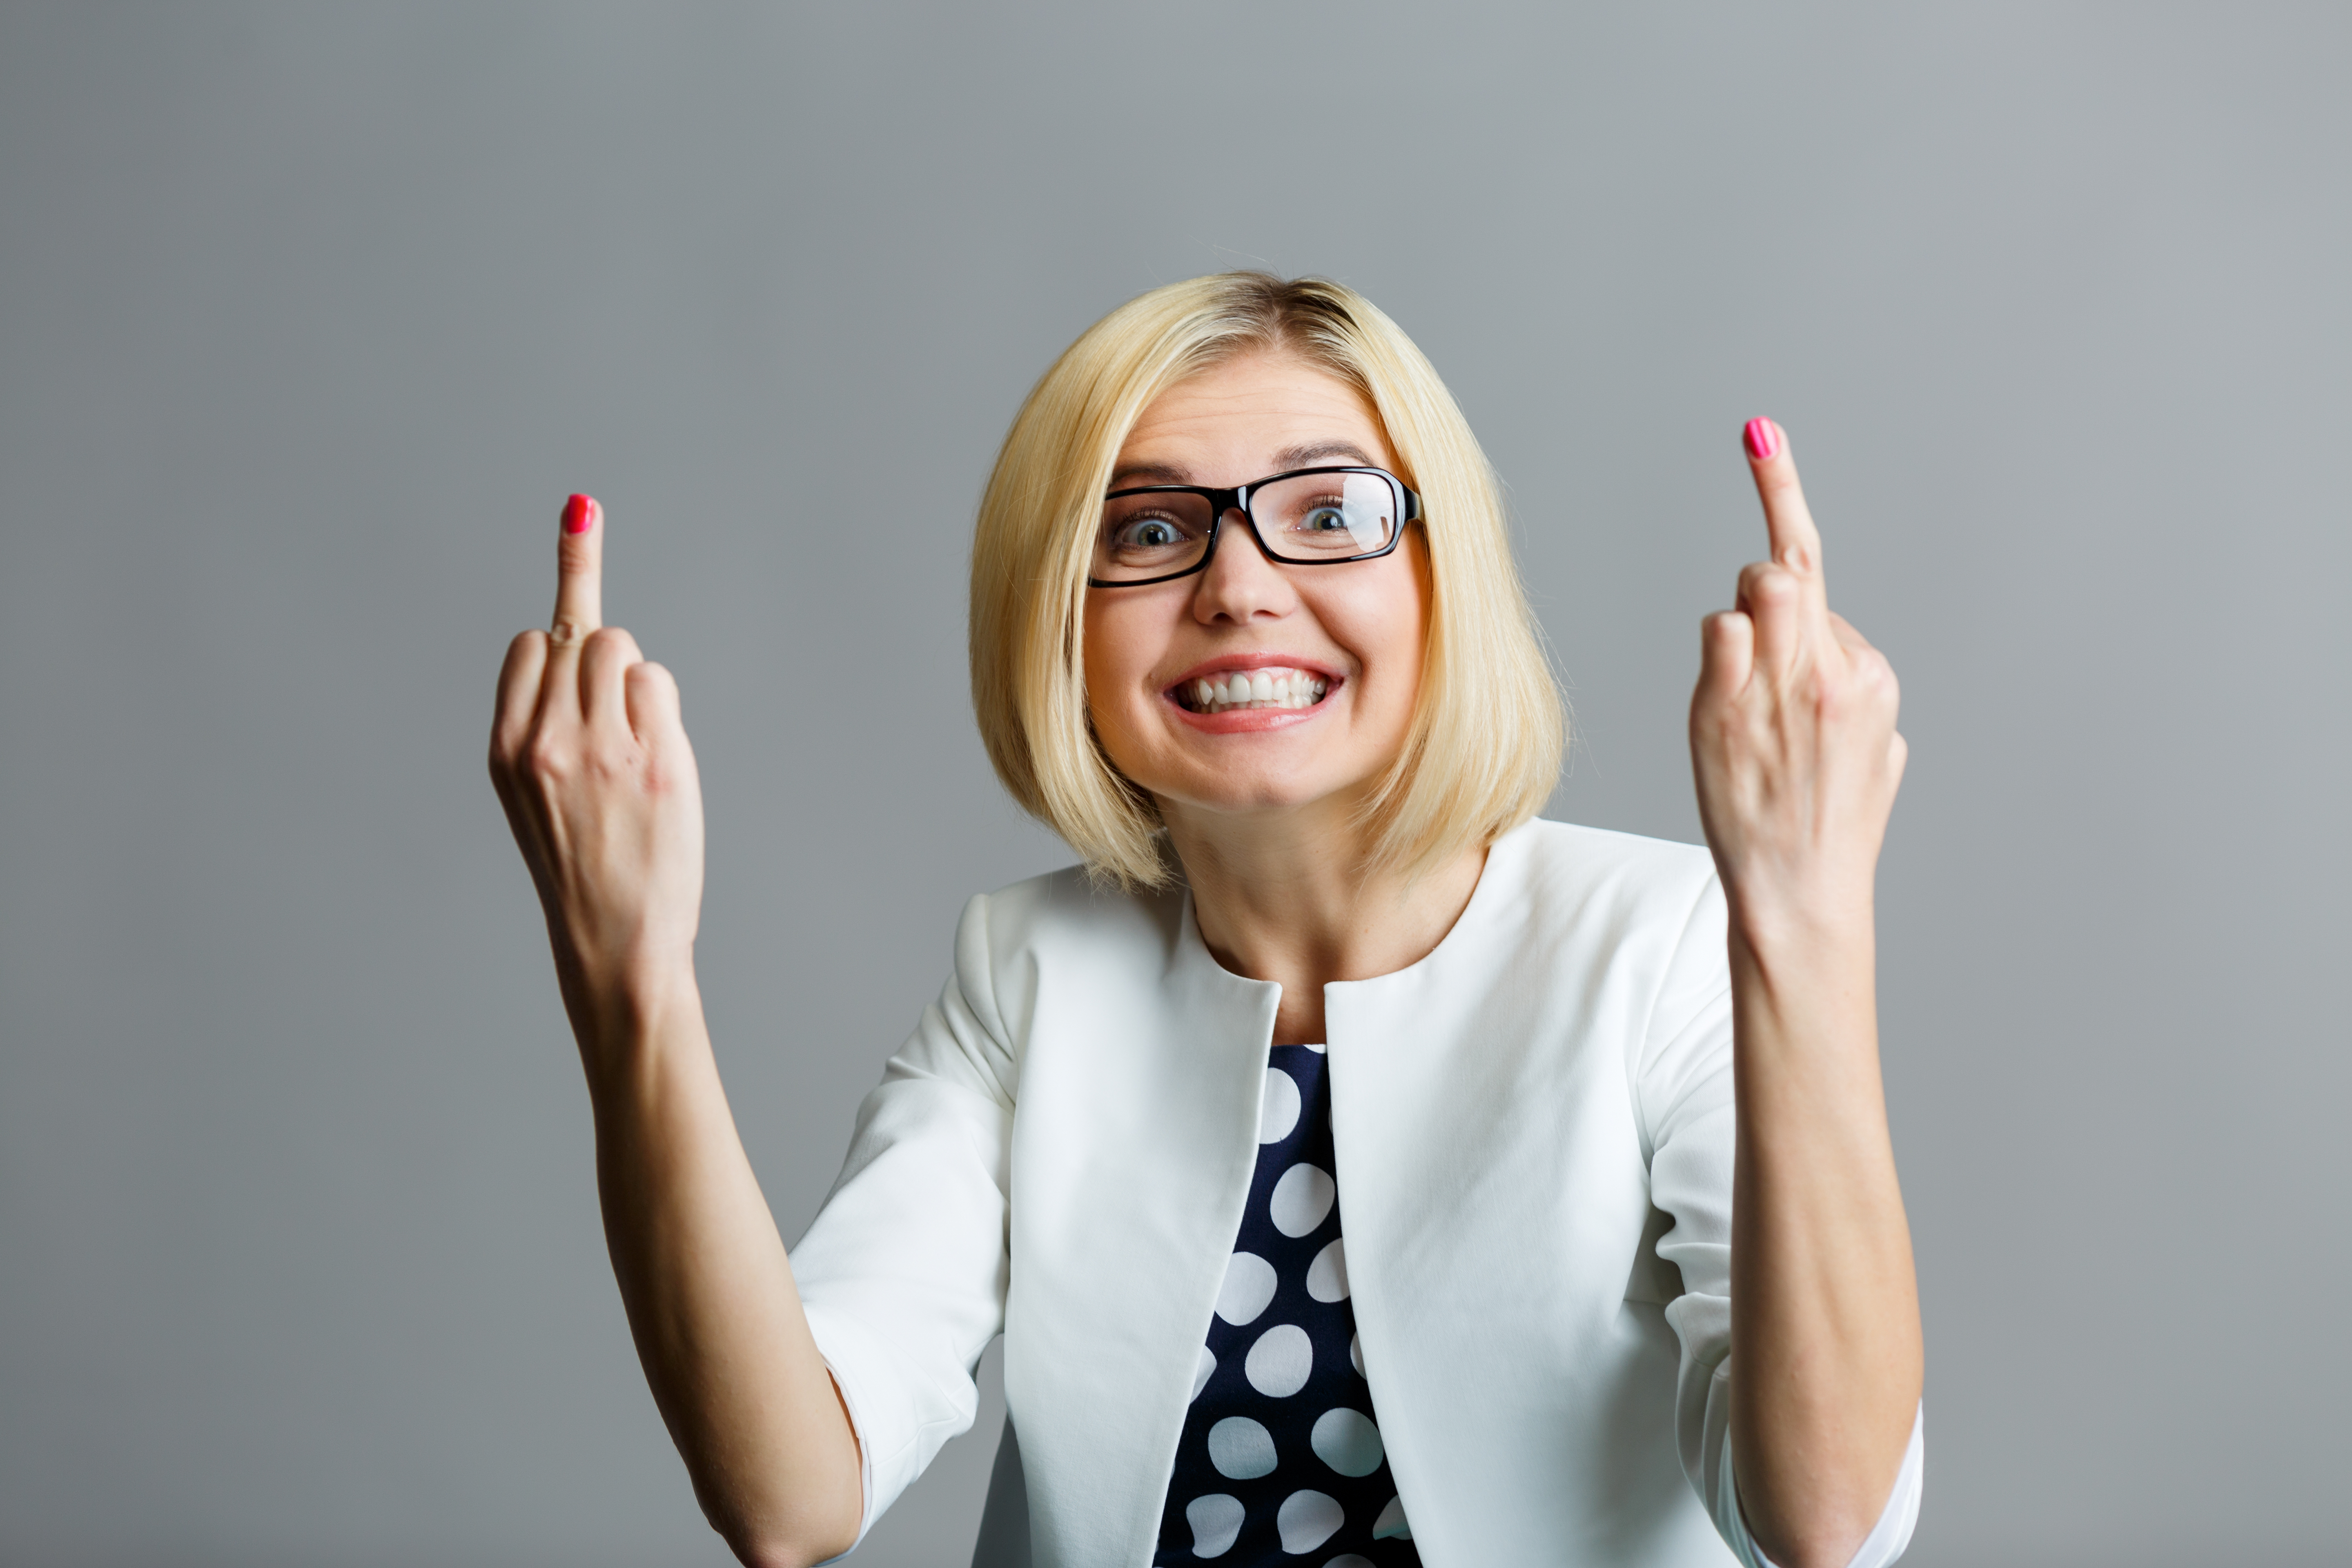 'Leadership Training' Tells Women They Are Dumb, Slutty, And Shouldn't Face Men Directly